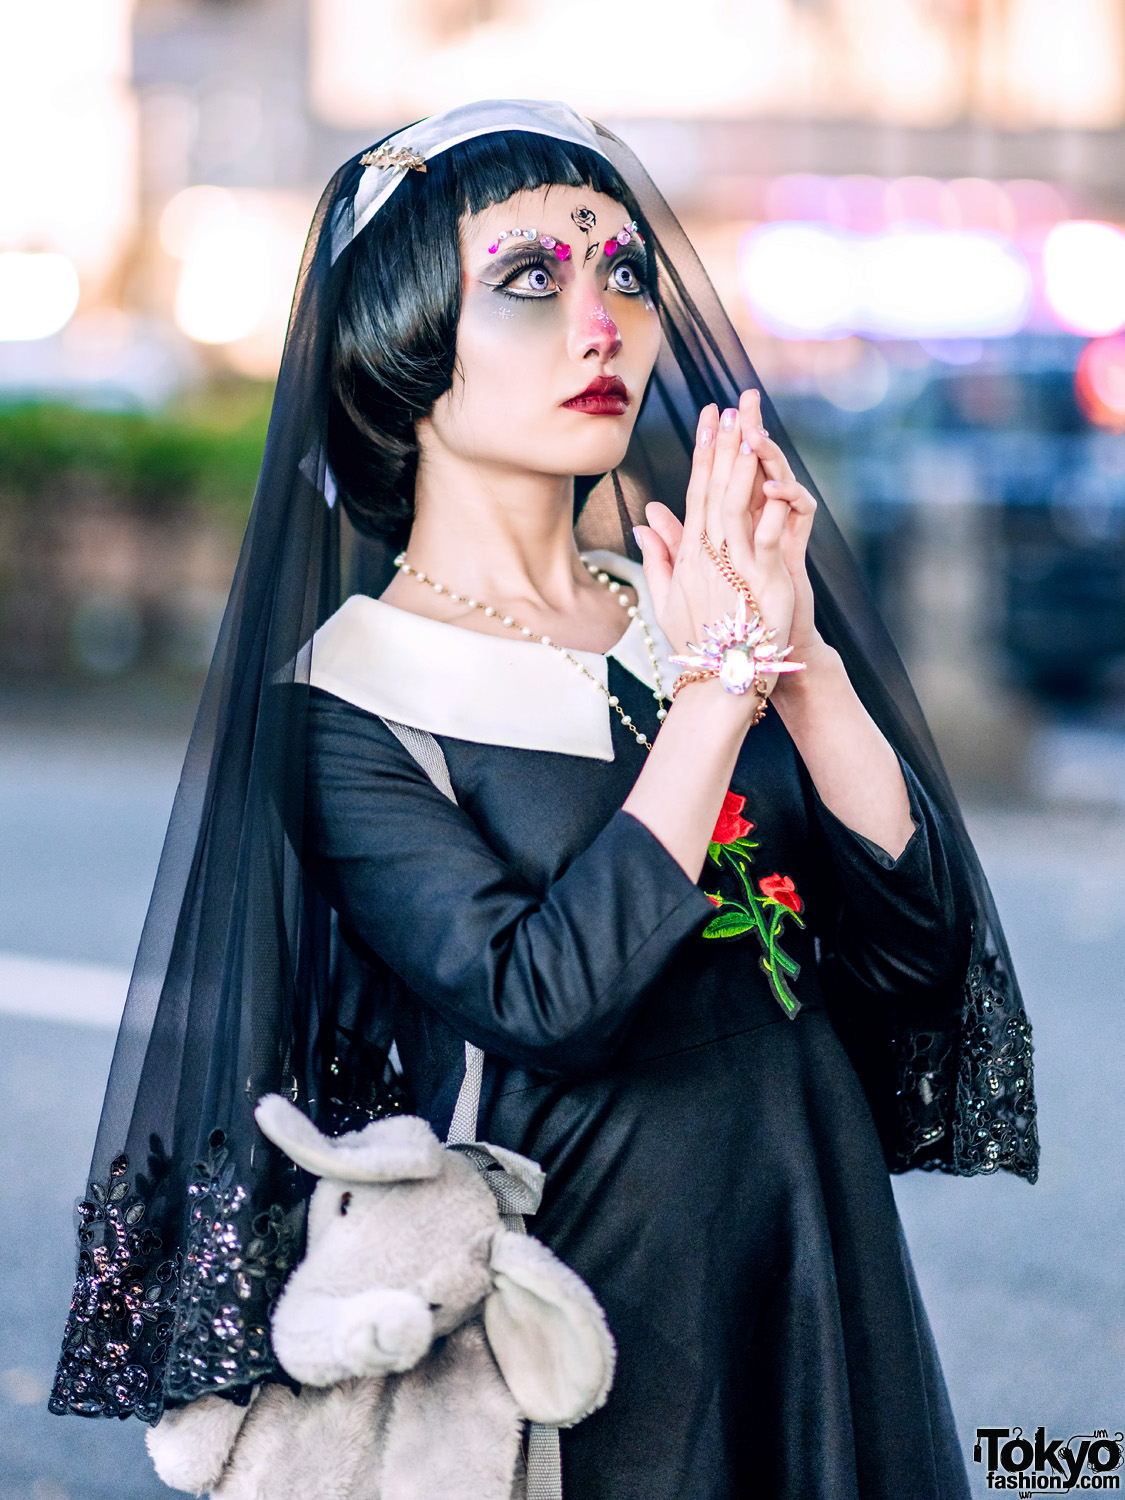 Japanese Creator in Gothic Harajuku Street Style w/ Doll Makeup, Face Jewels, Sheer Veil & Elephant Backpack